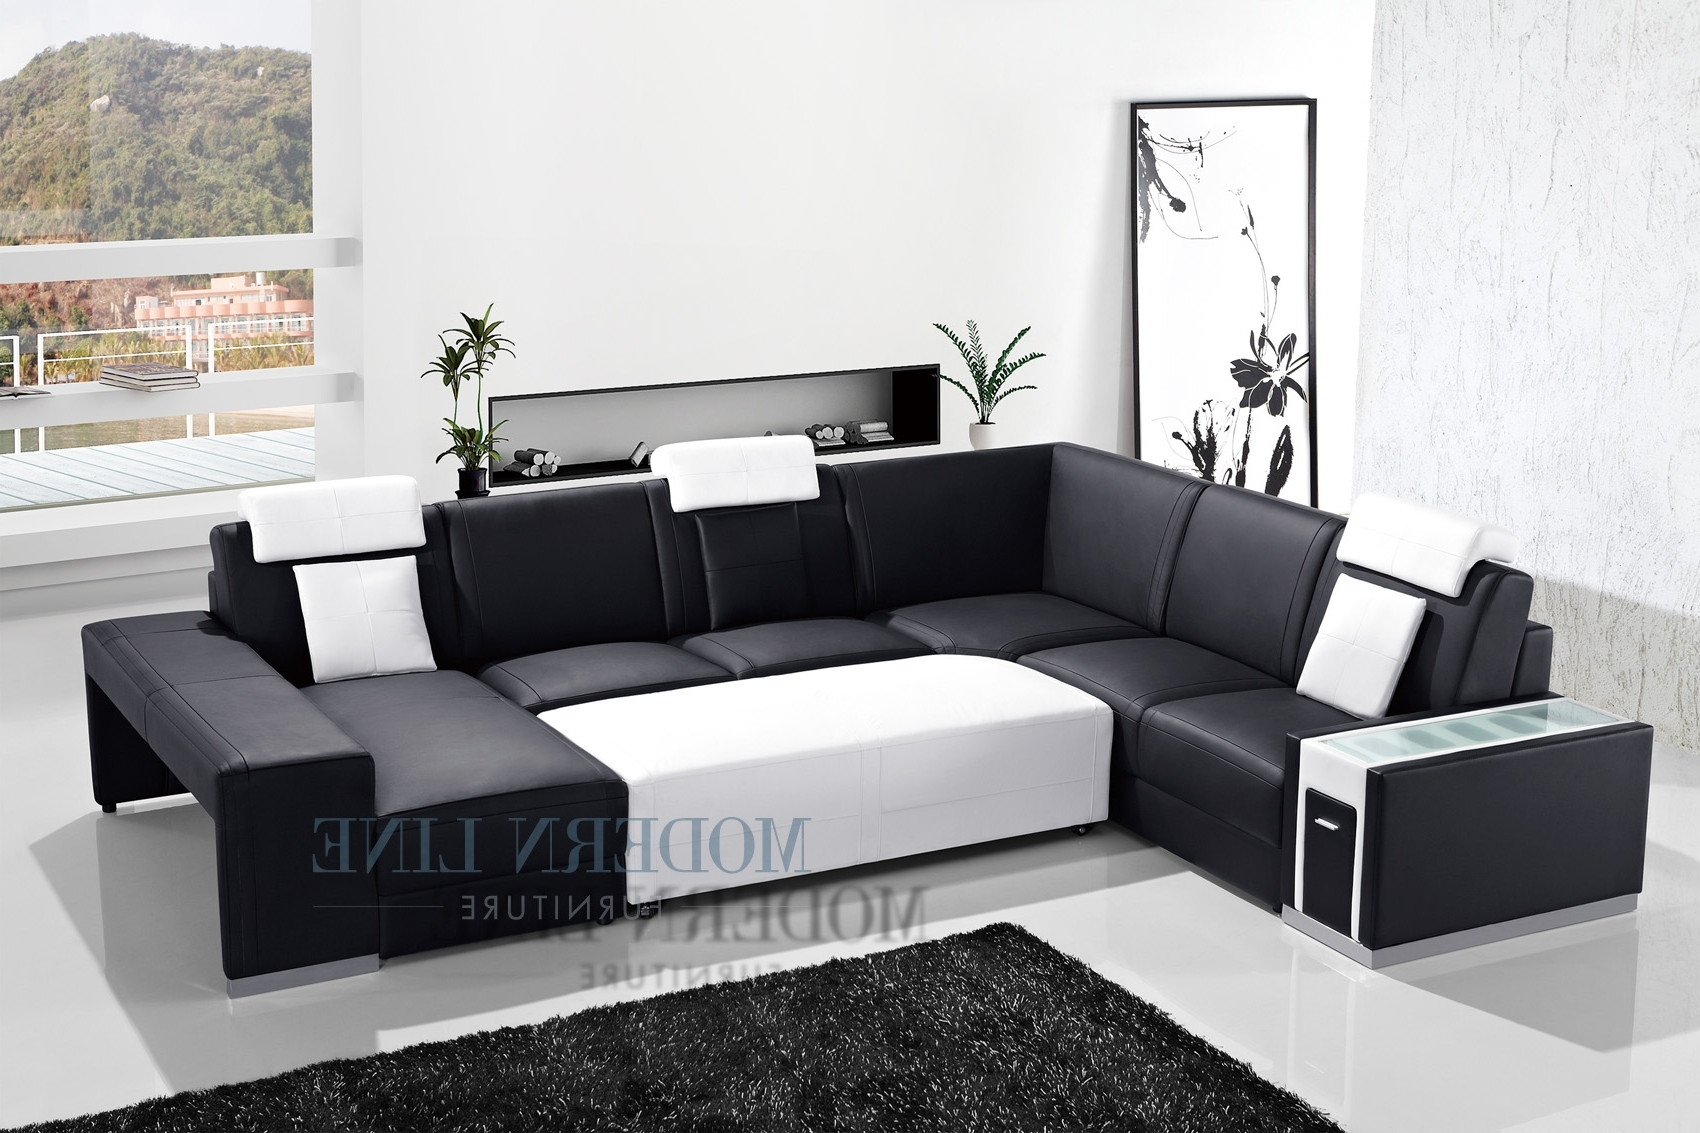 Most Current Black Leather Sectionals With Ottoman Pertaining To Awesome Black Leather Sectional With Ottoman Ideas – Liltigertoo (View 4 of 15)